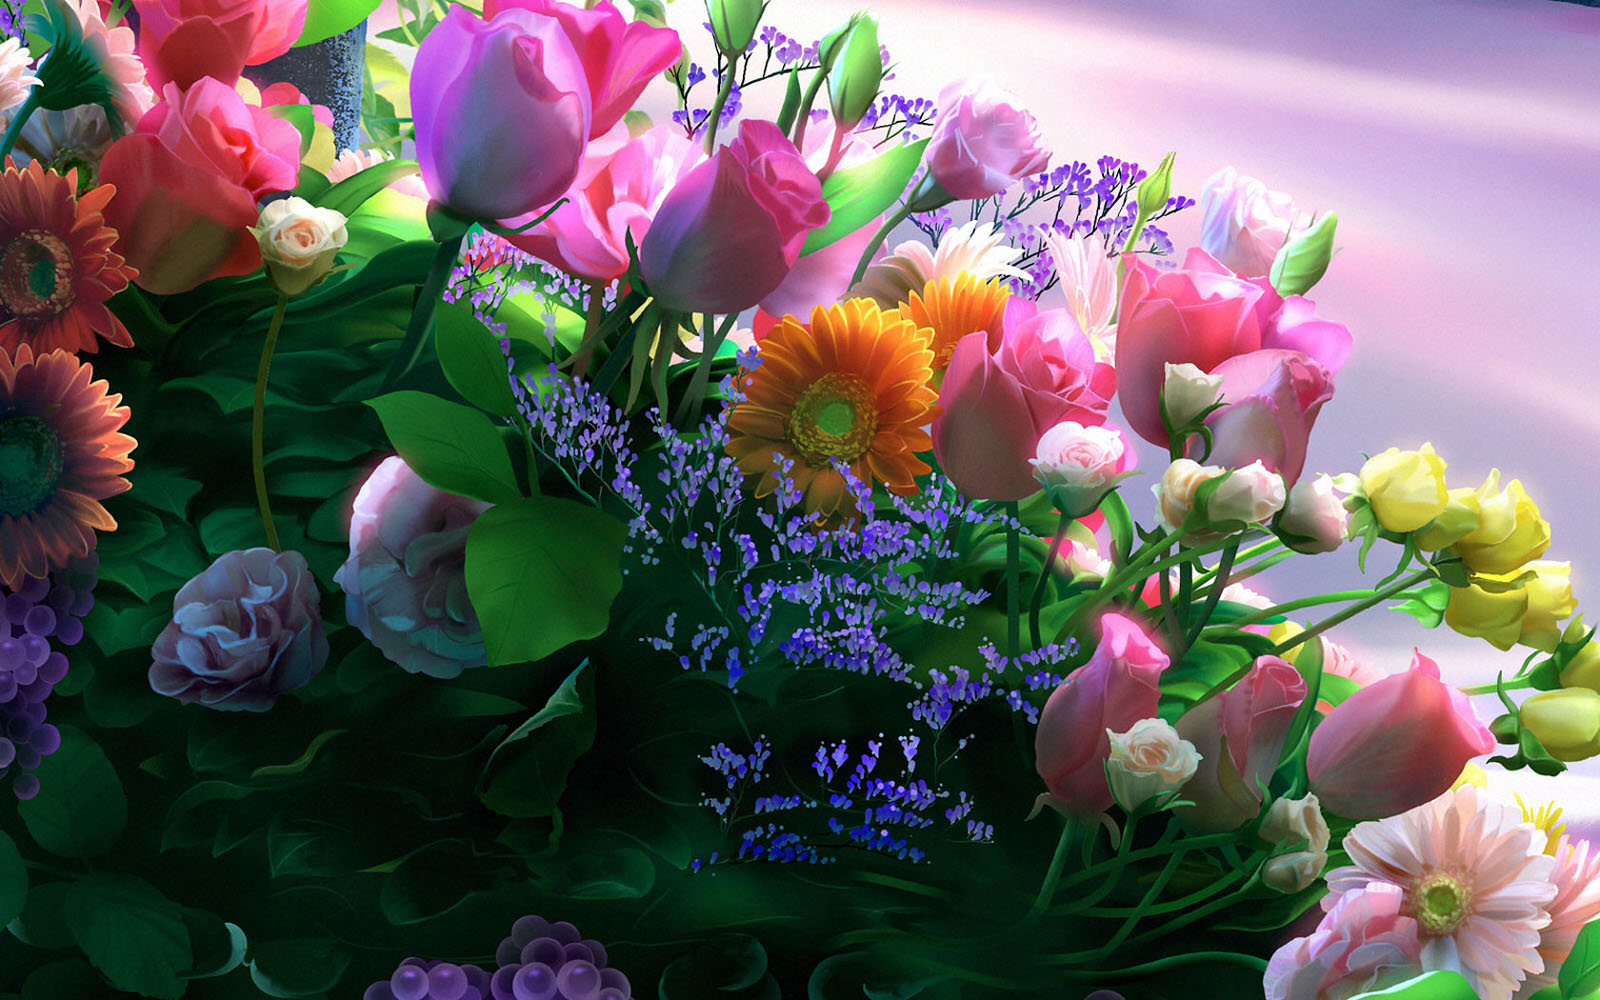 : Windows 7 Flowers Wallpapers, Windows 7Flowers Desktop Wallpapers